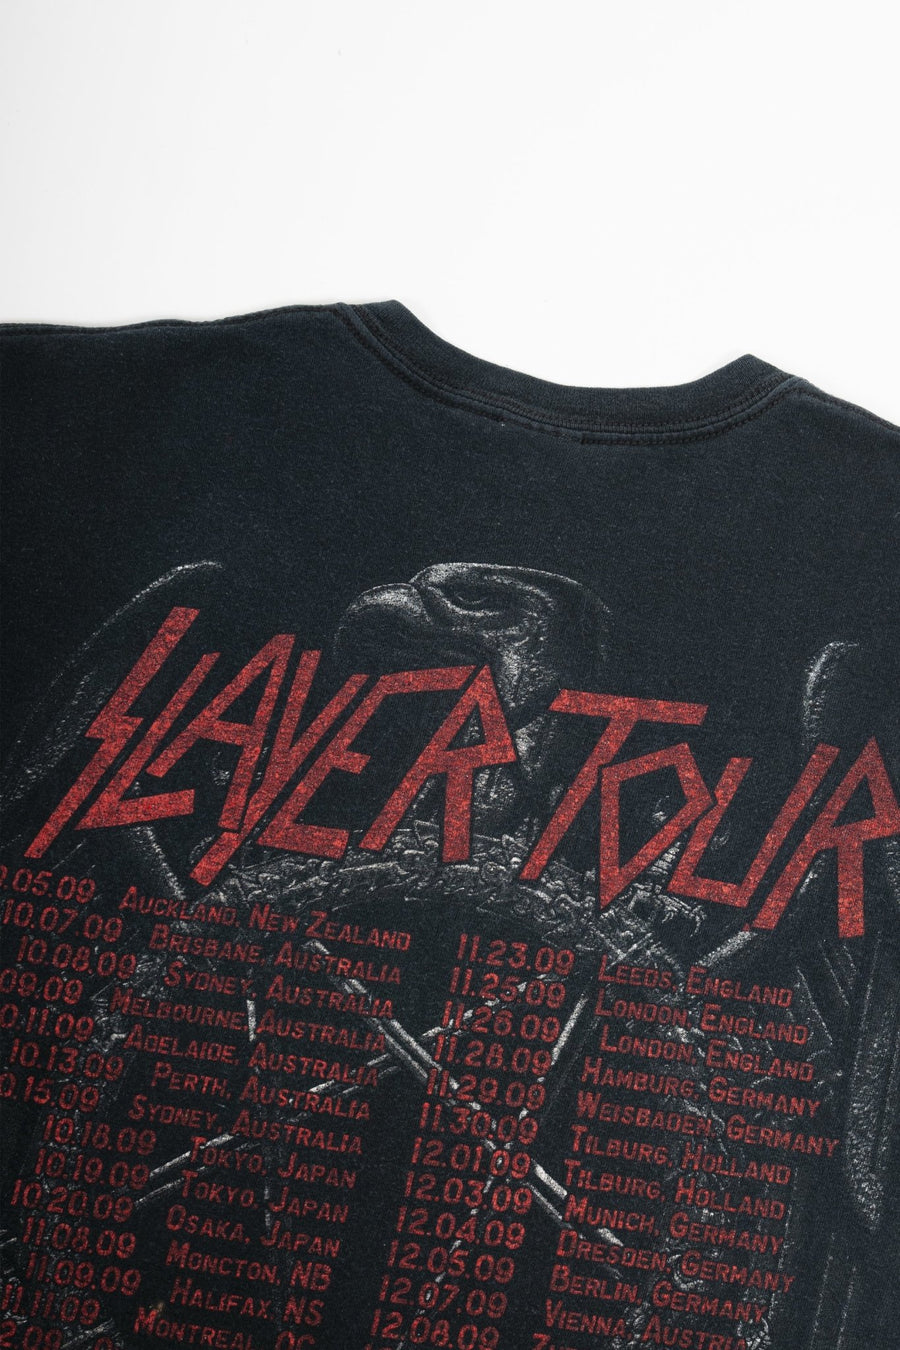 T-shirt Slayer Tour 2009 - WASTED PARIS